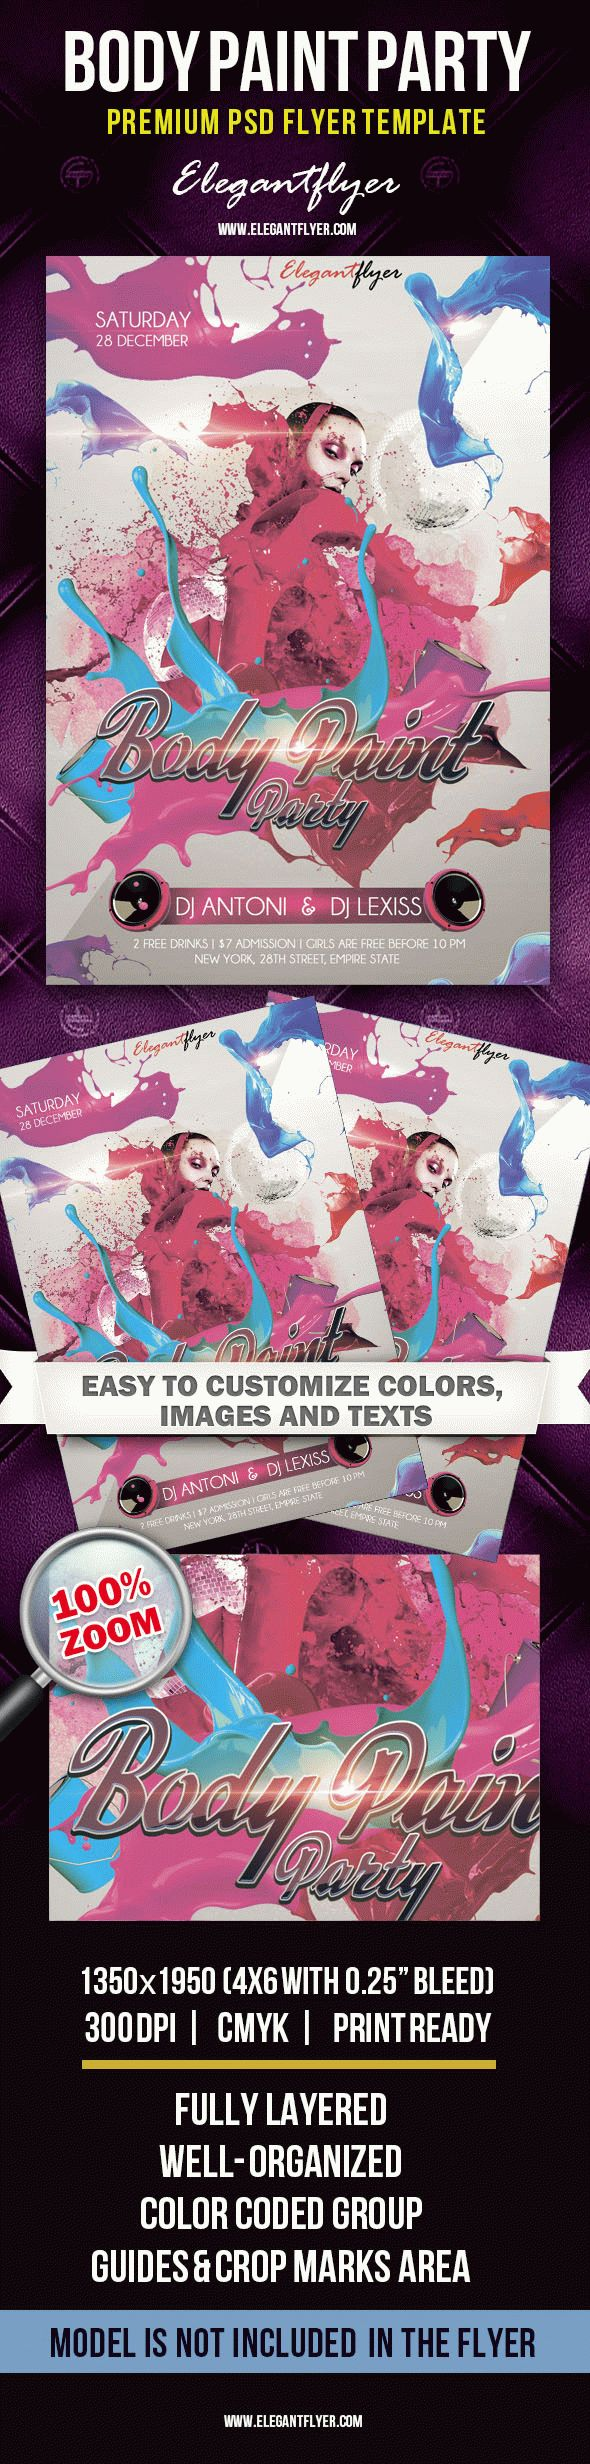 Body Paint Party – Premium Club flyer PSD Template